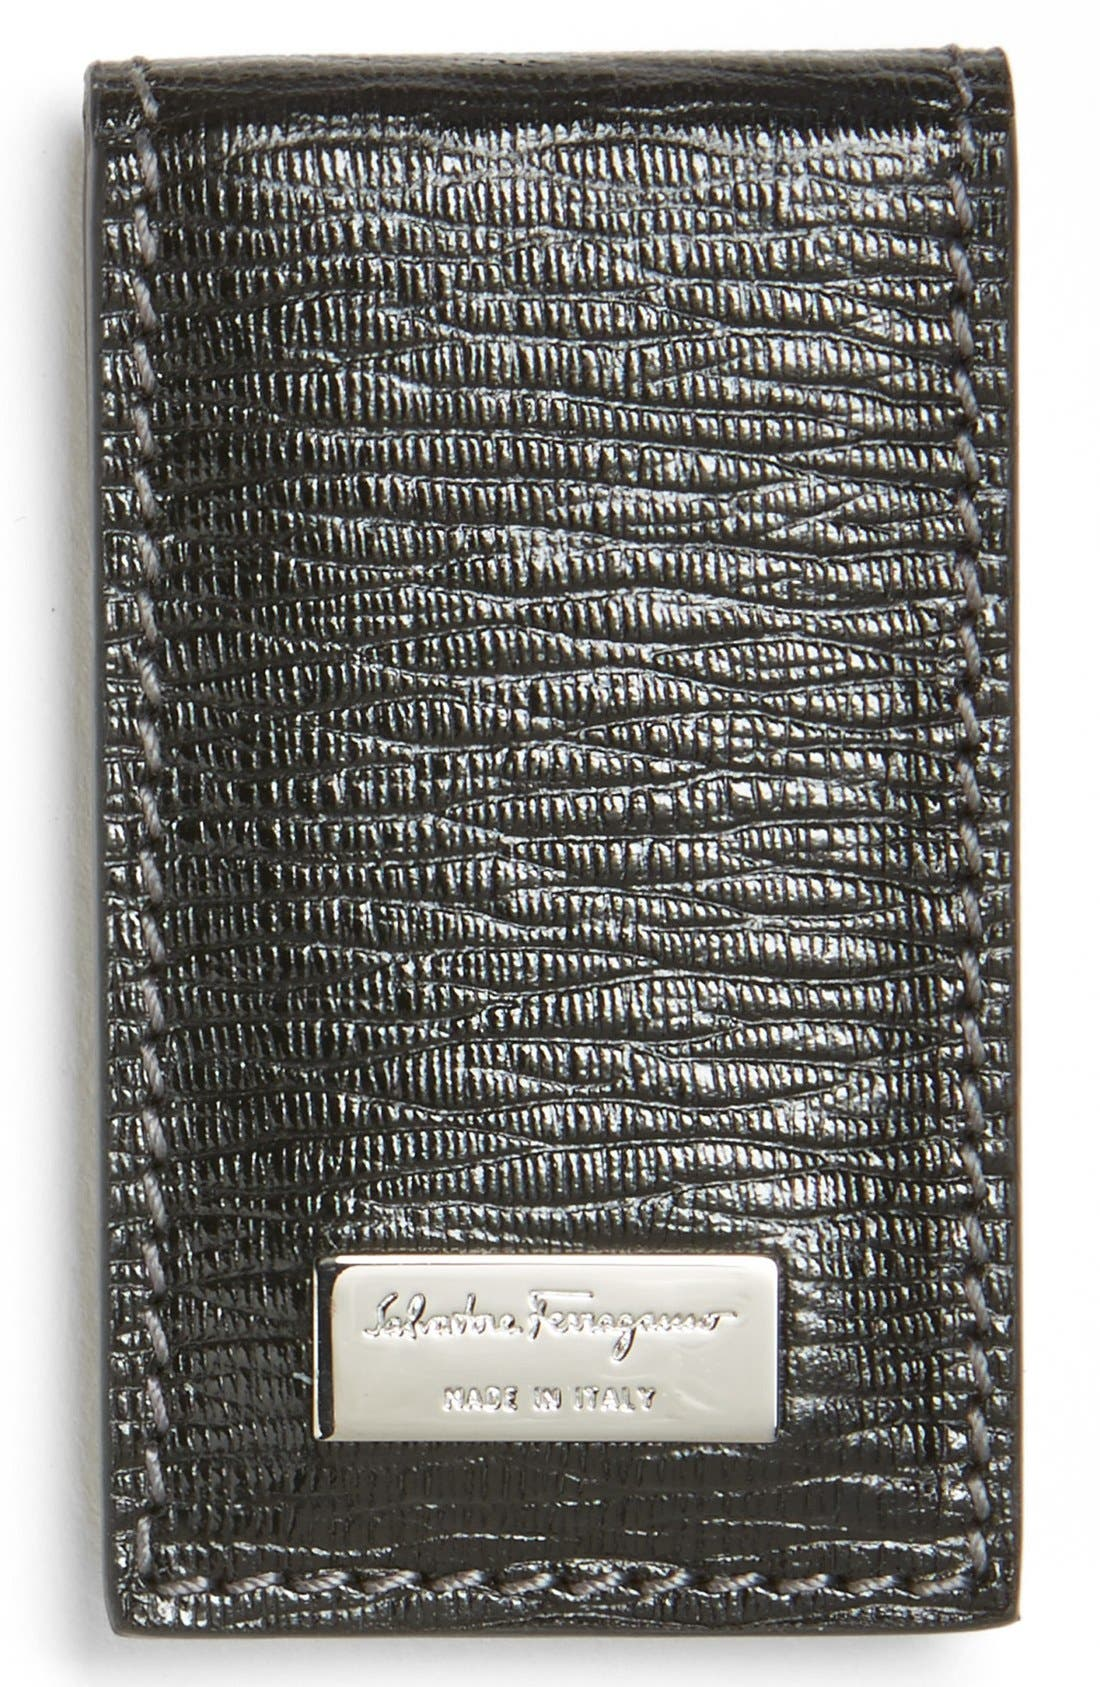 Alternate Image 1 Selected - Salvatore Ferragamo Stamped Calf Magnetic Money Clip